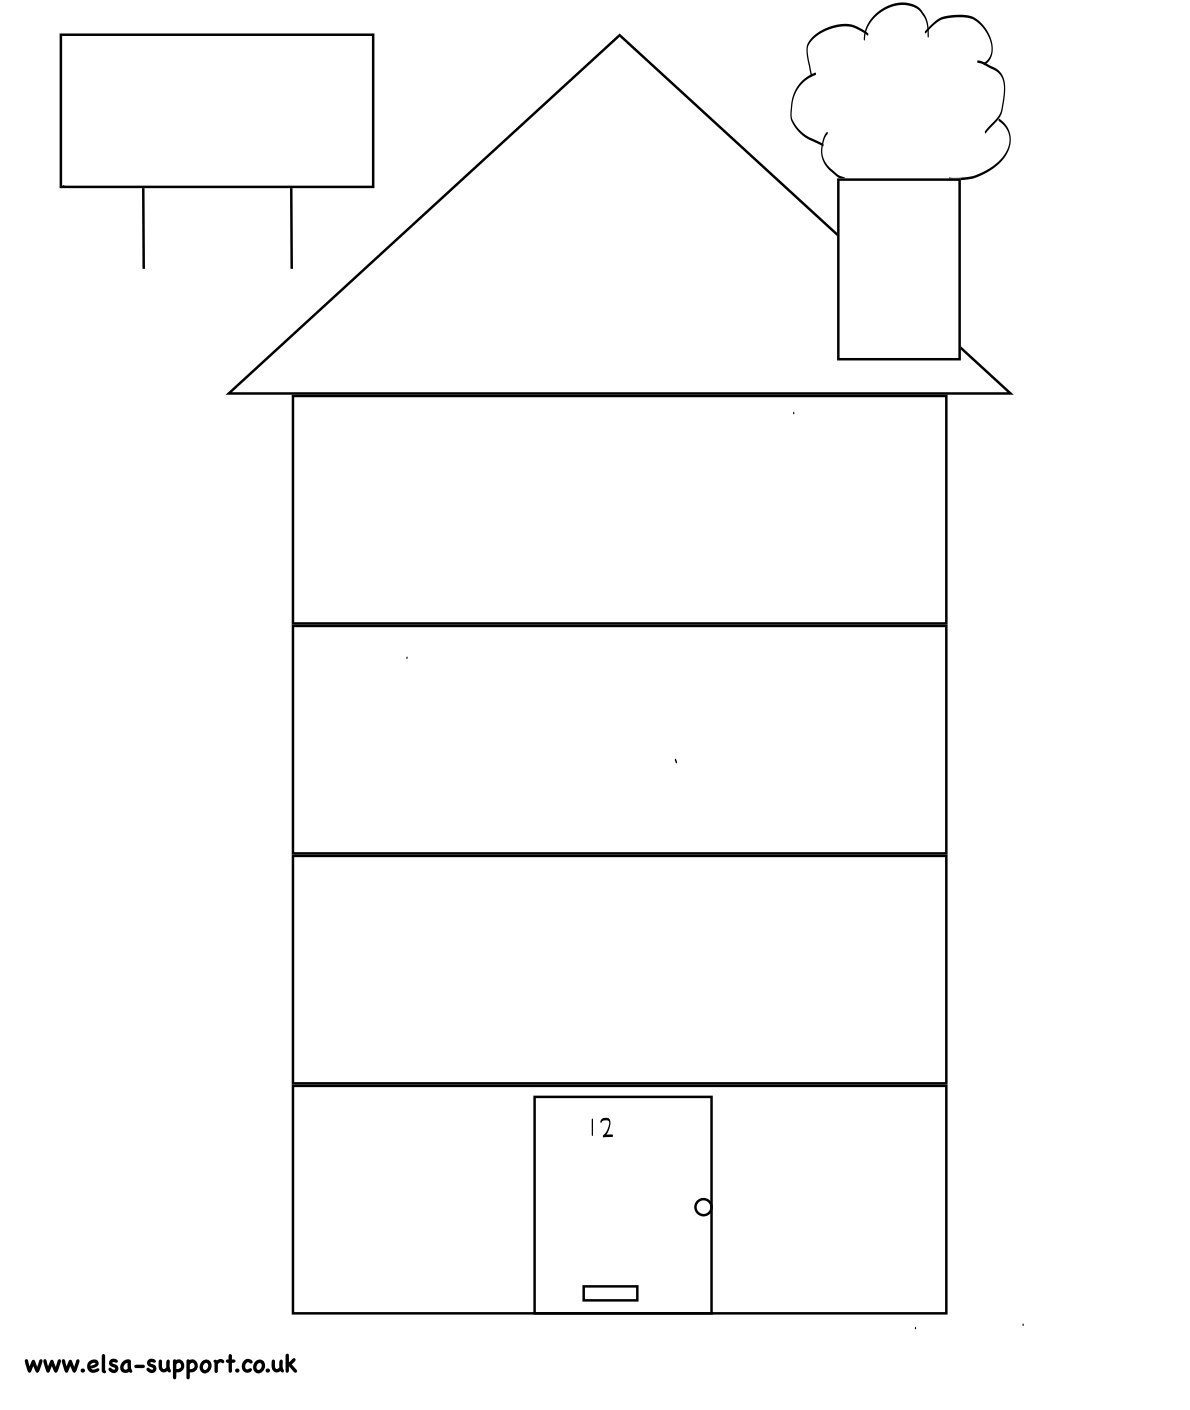 printable house template for kids - Monza berglauf-verband com